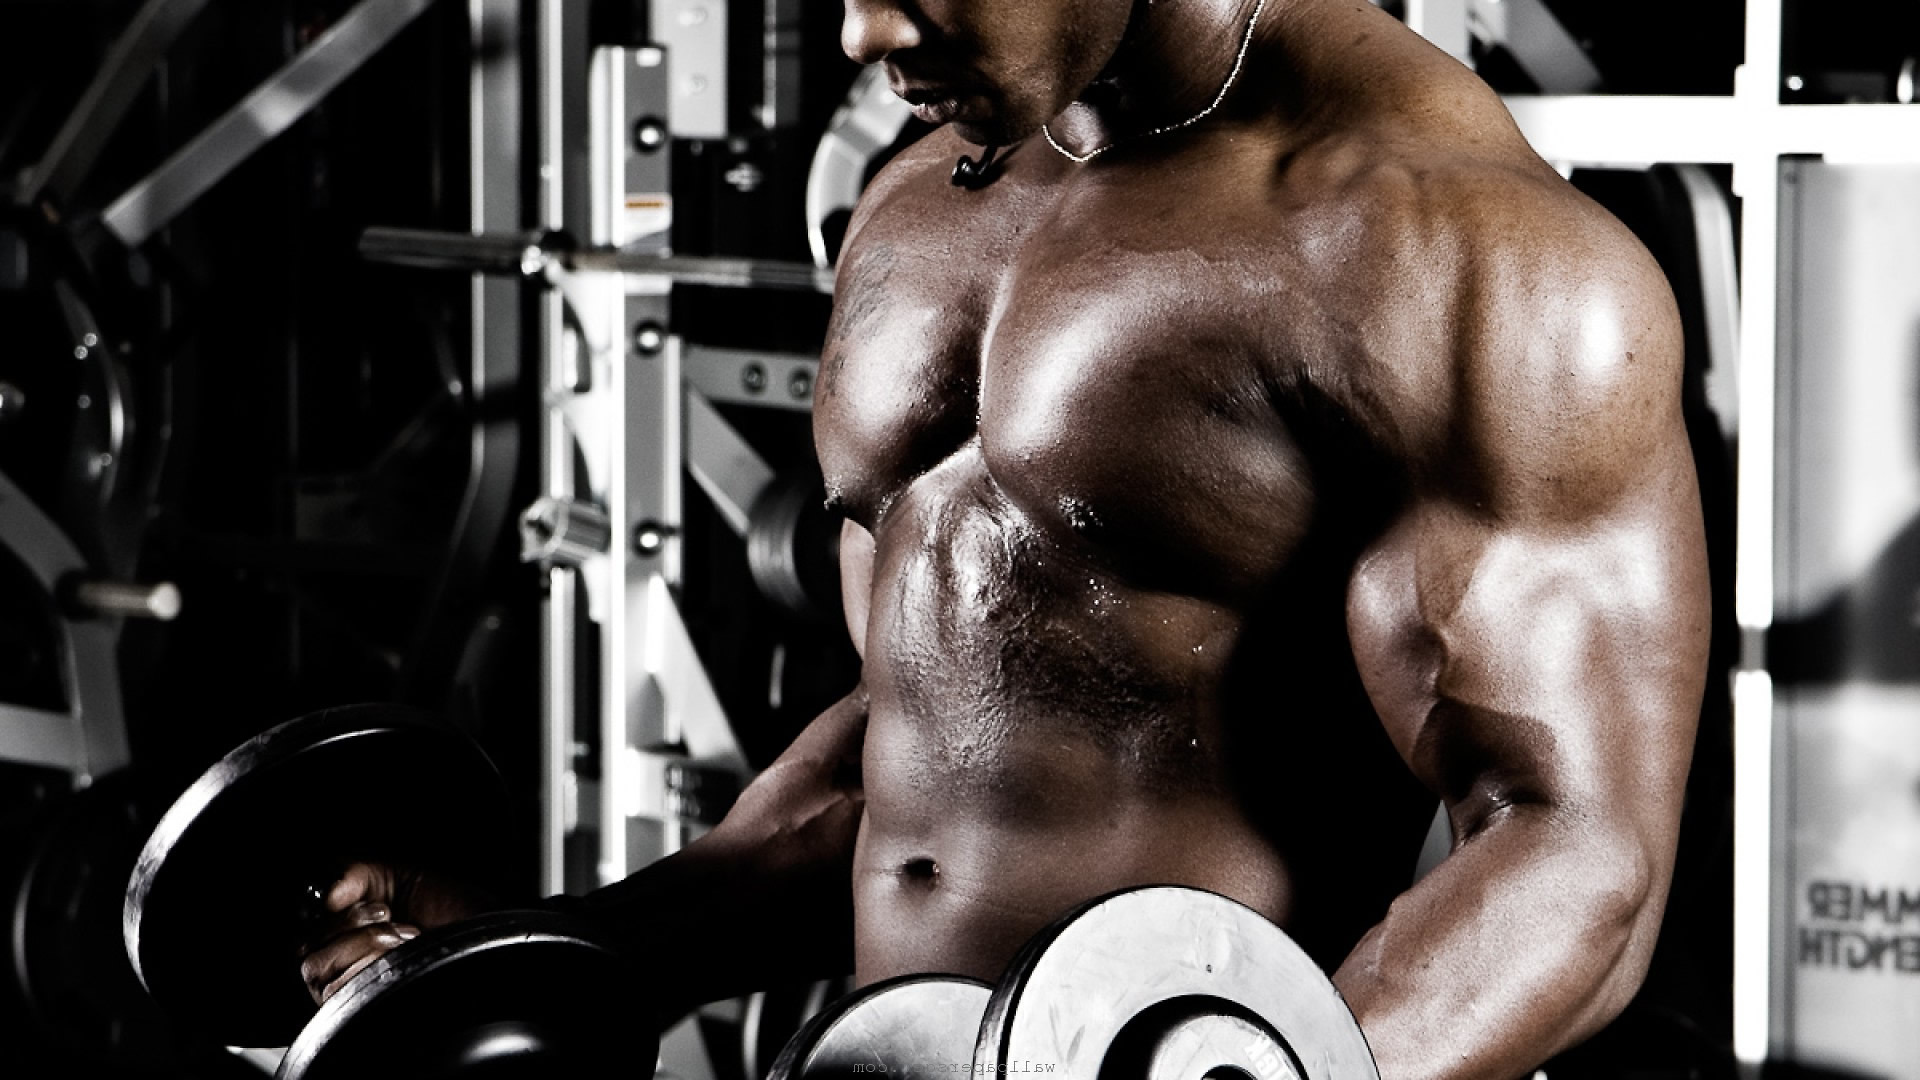 UK Steroids for Strong Muscles